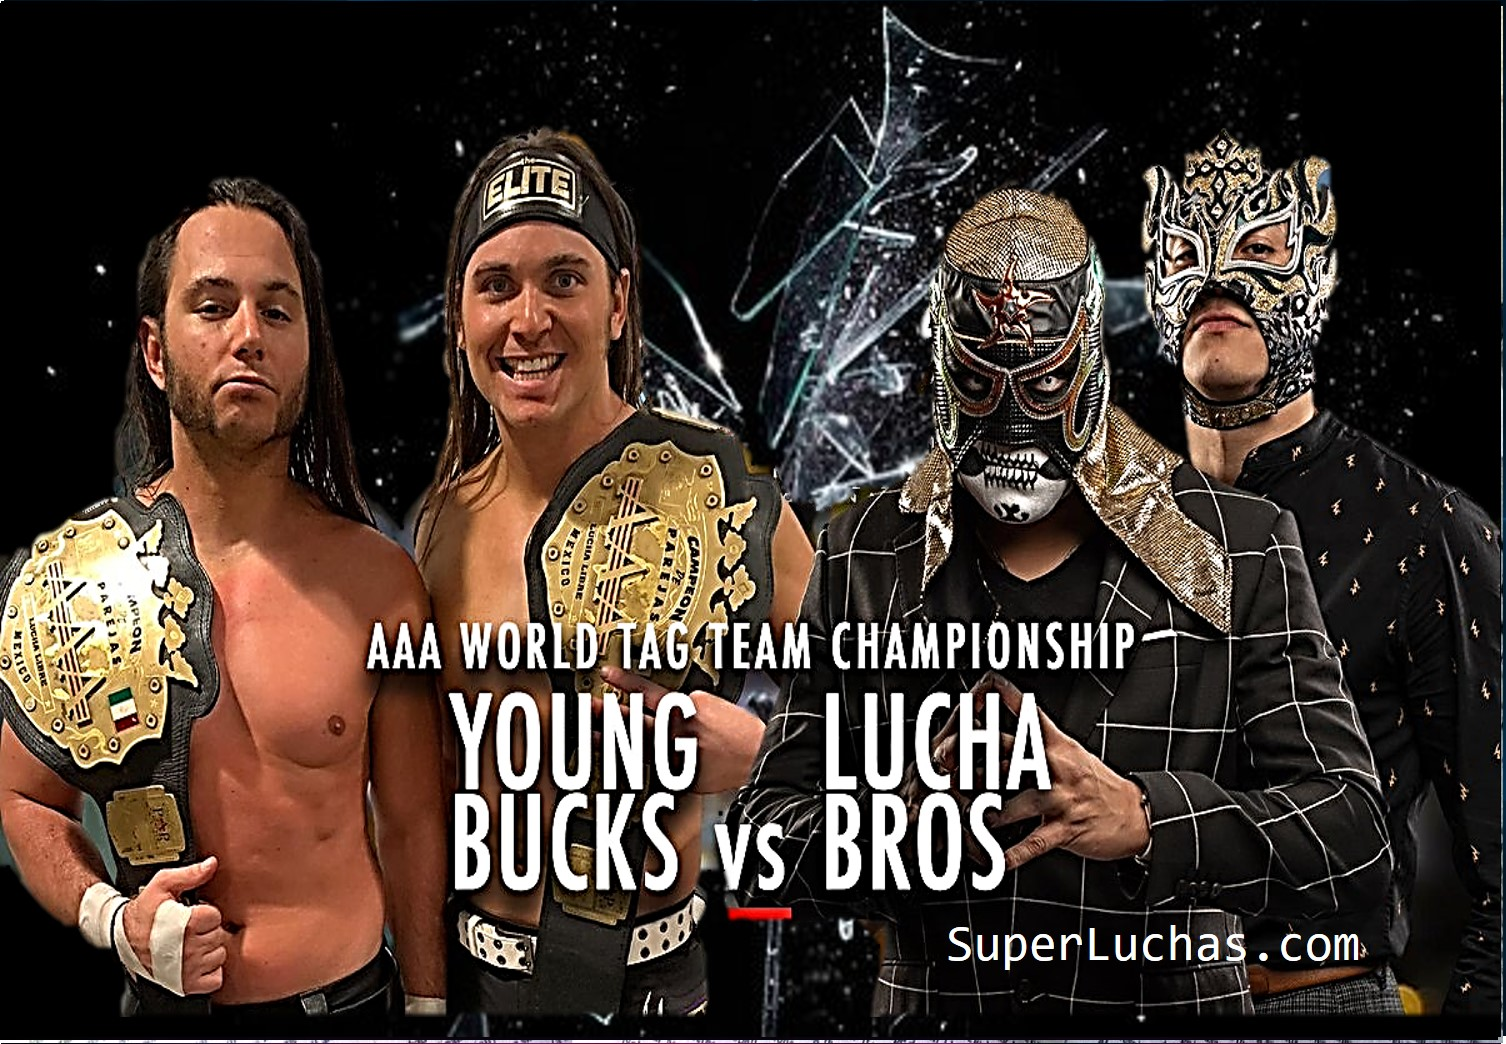 AAA: Young Bucks lanzan desafío a Lucha Brothers (video) 1